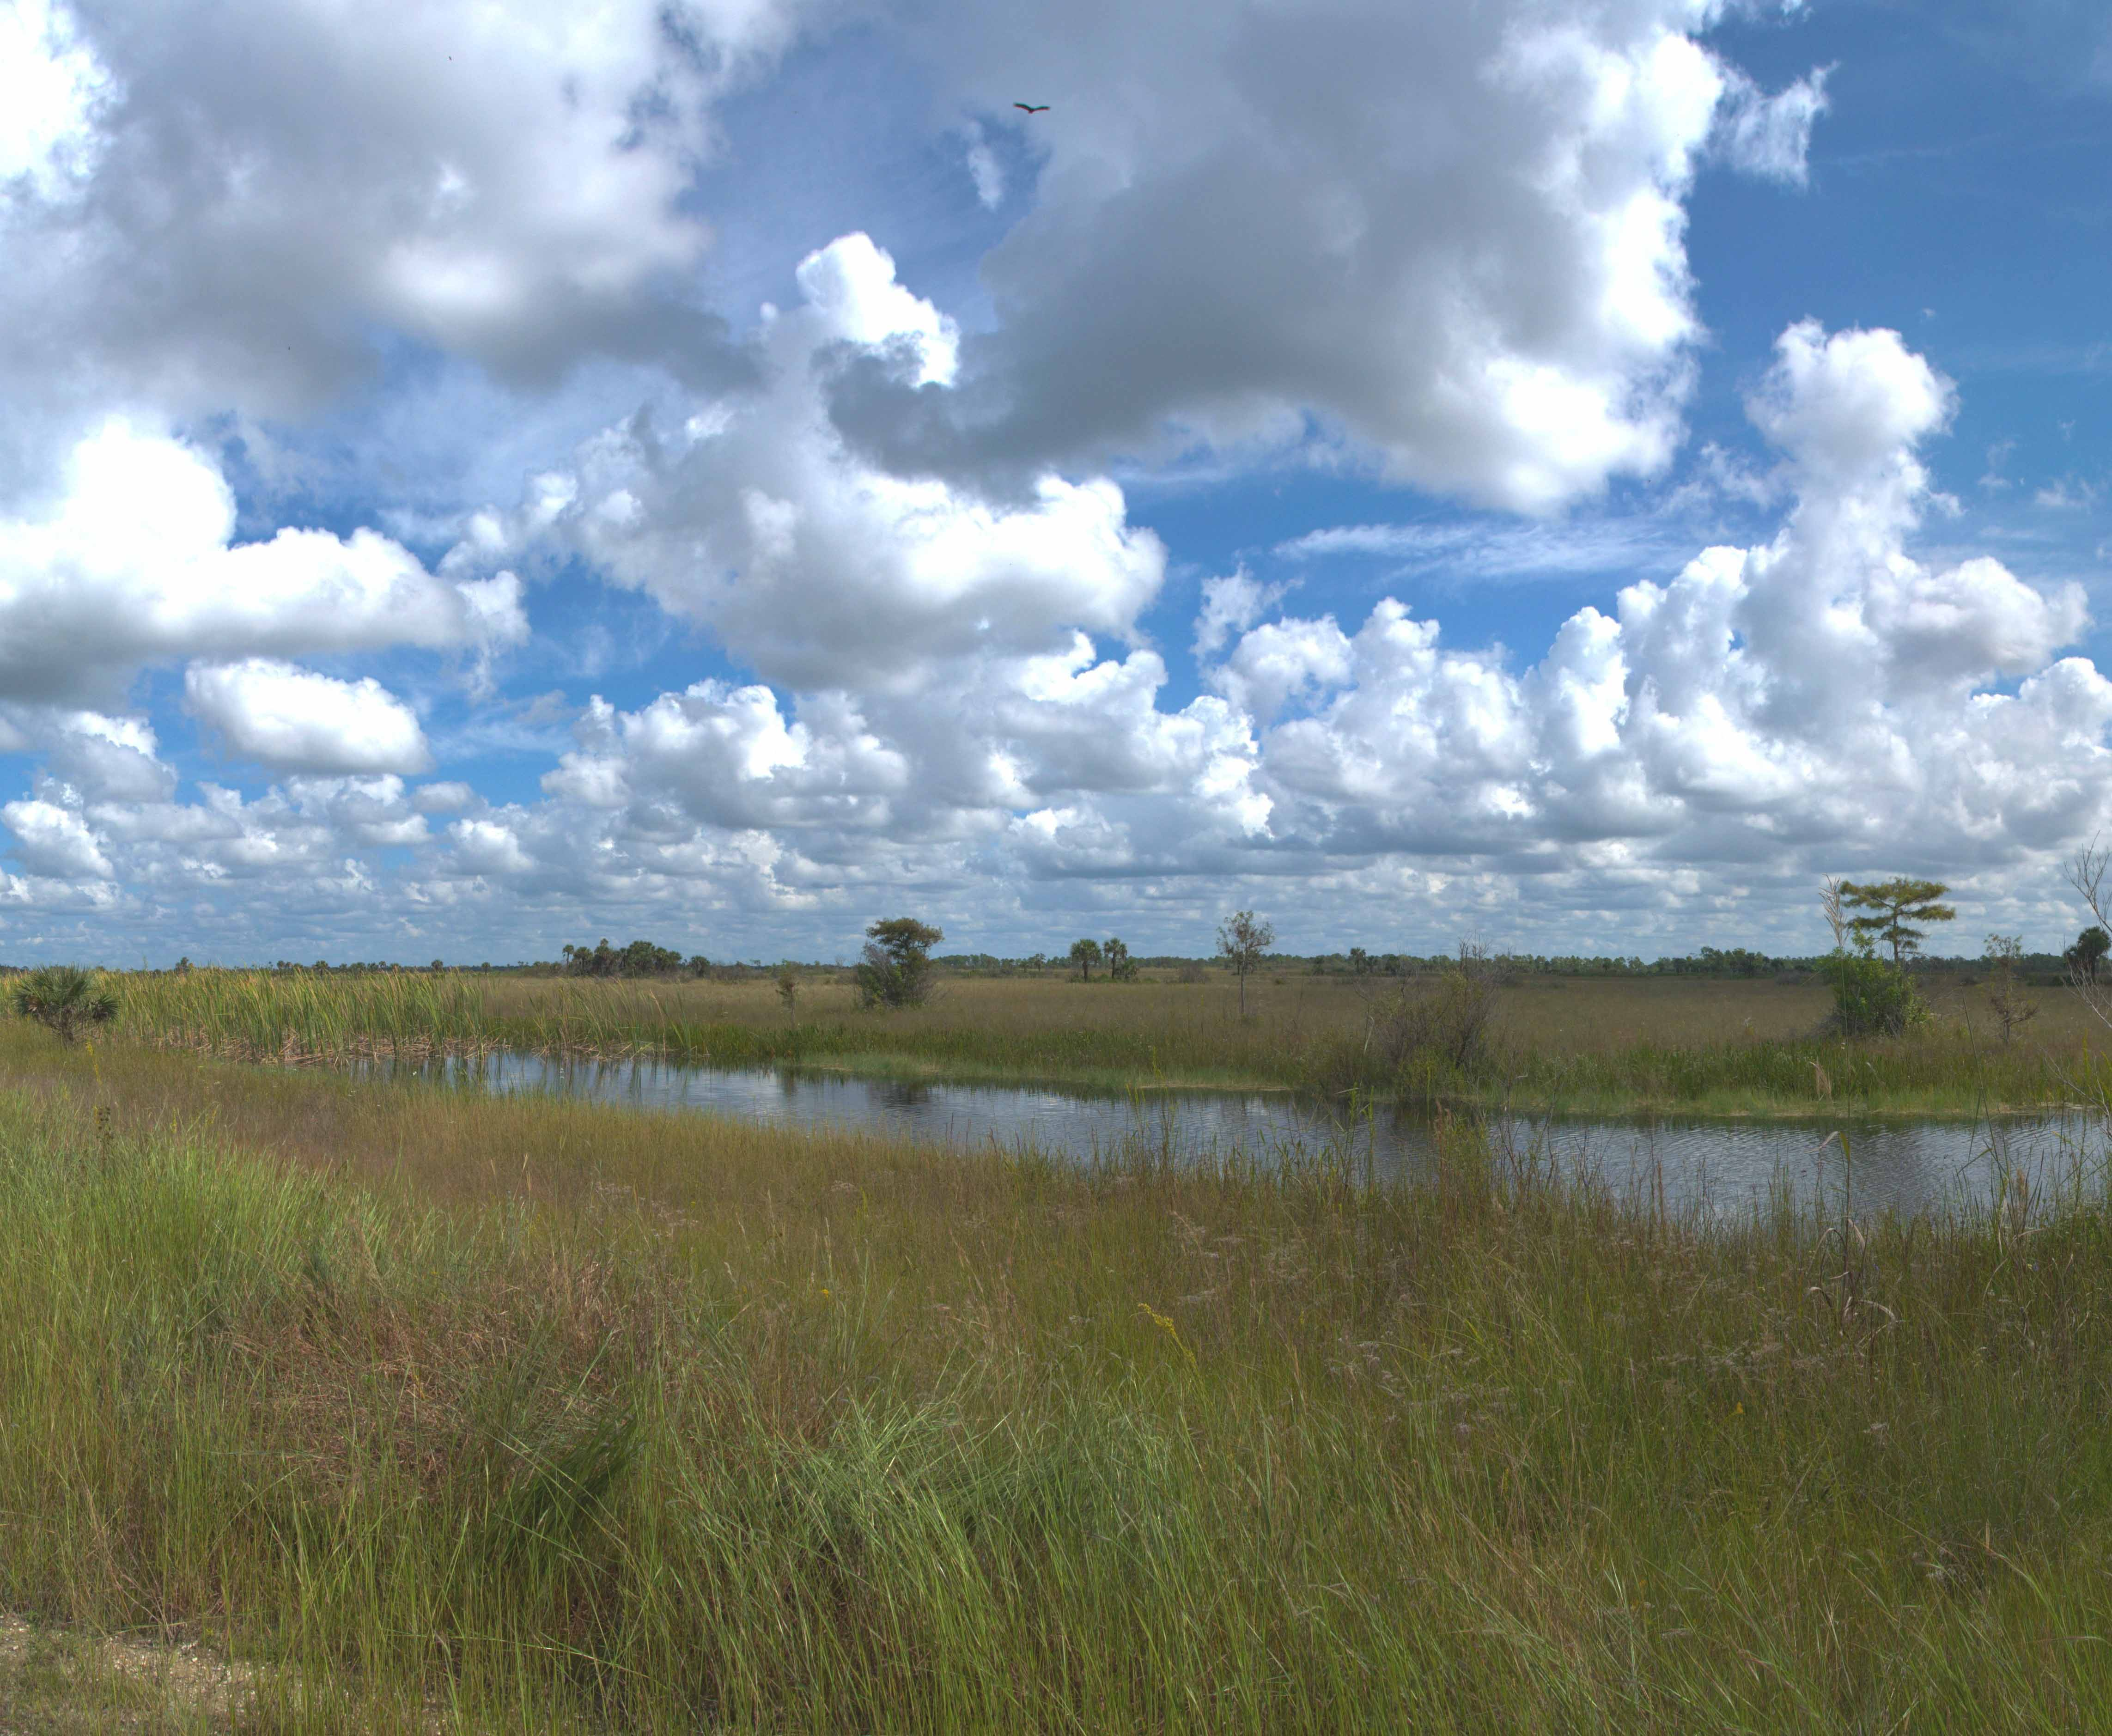 View of a river in the Everglades.